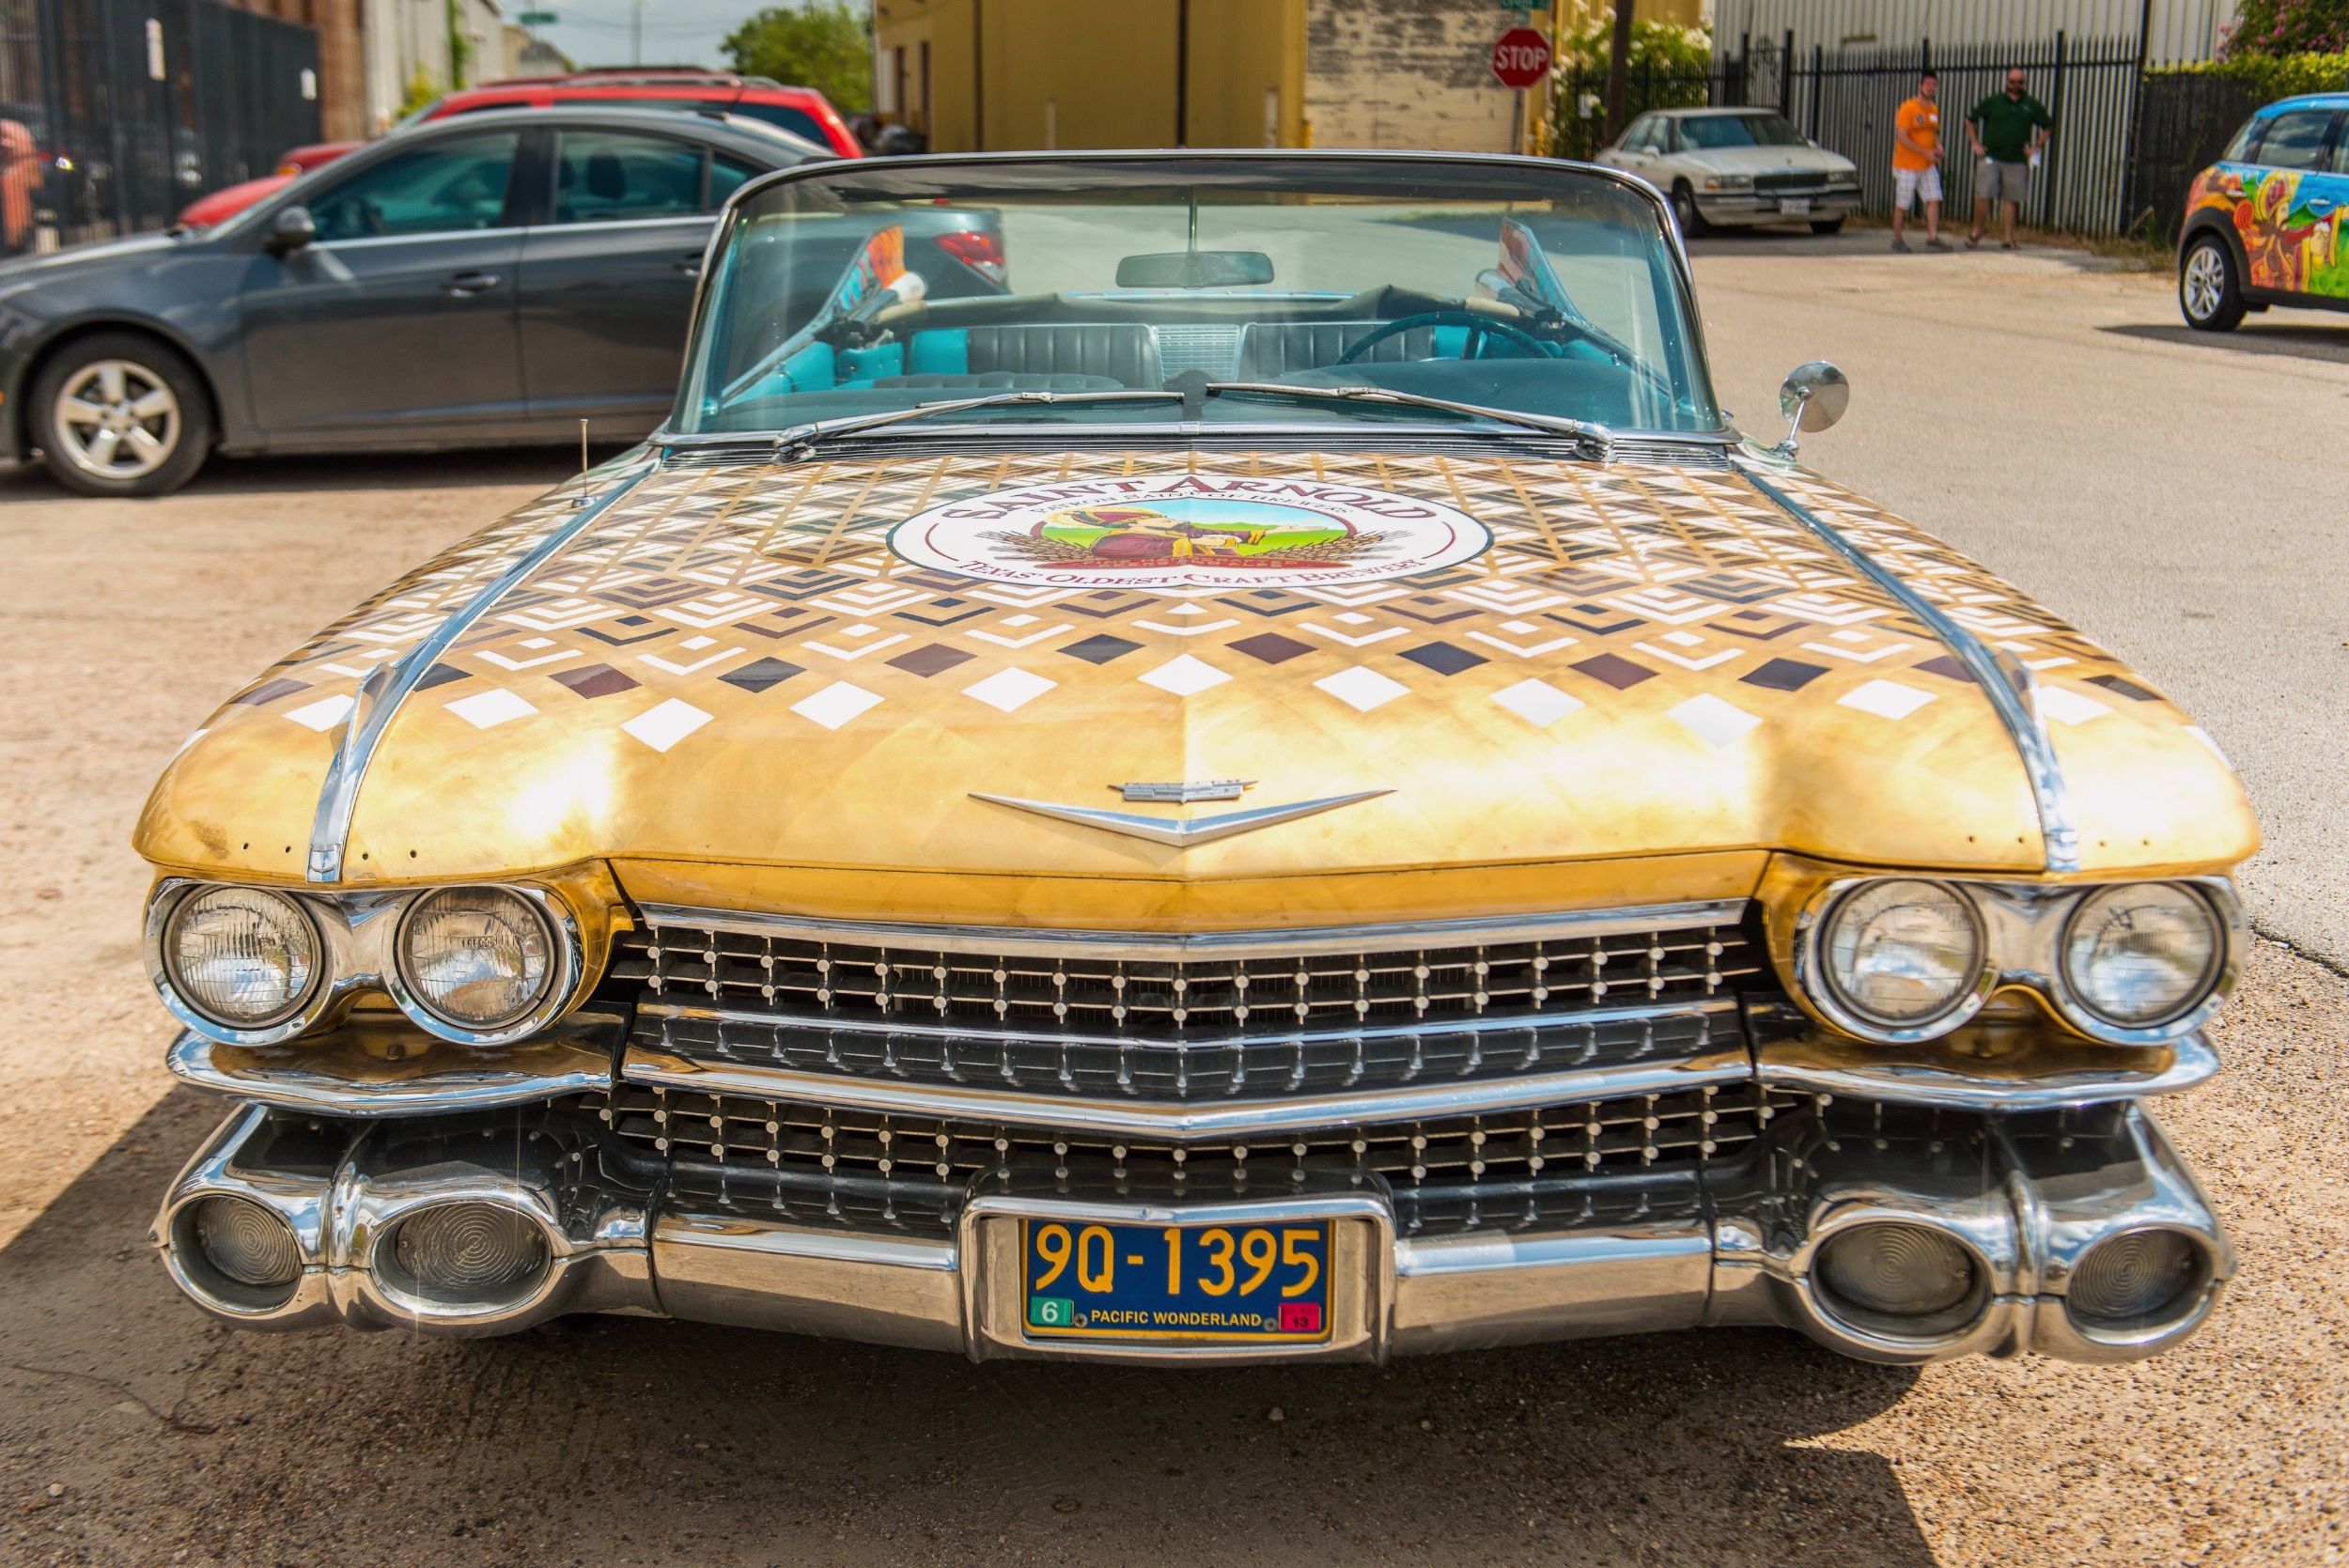 1959 Caddy for St. Arnolds Brewery